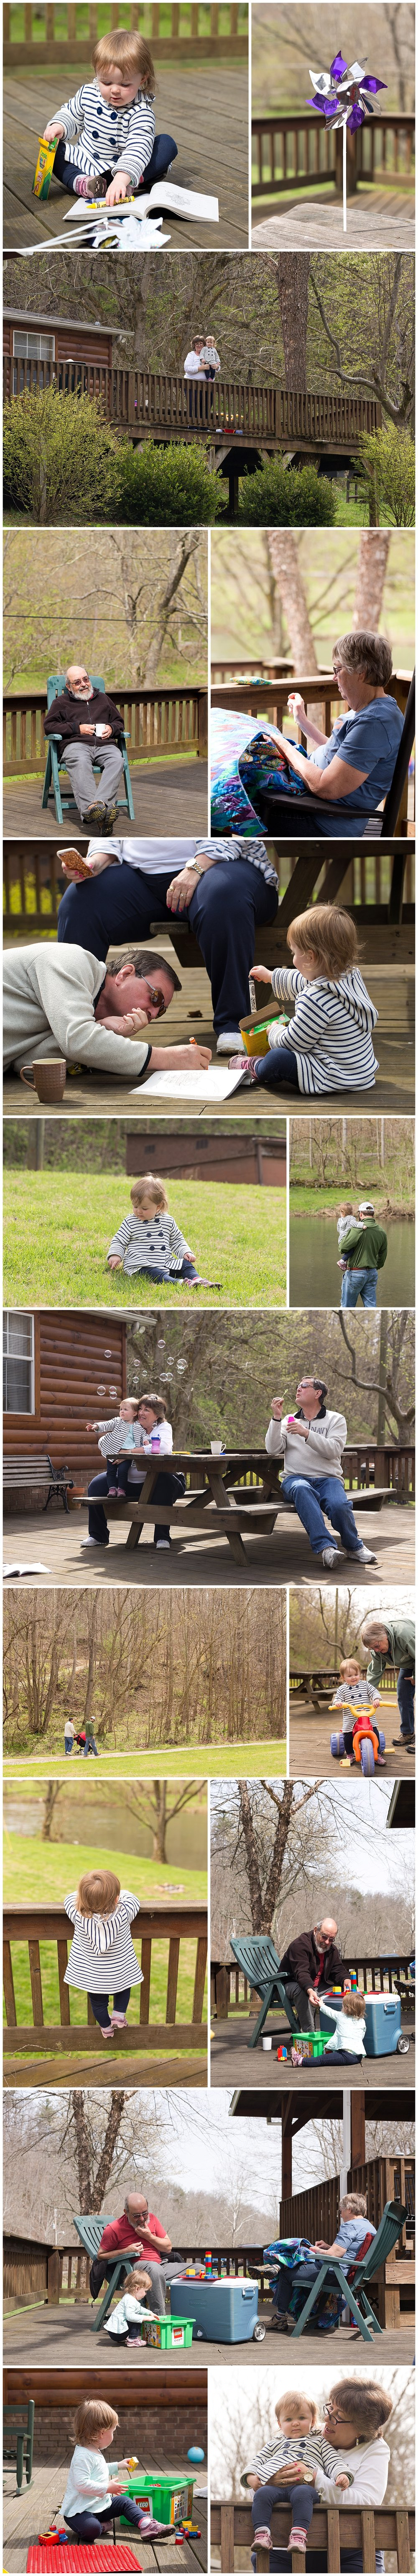 family fun at log cabin retreat